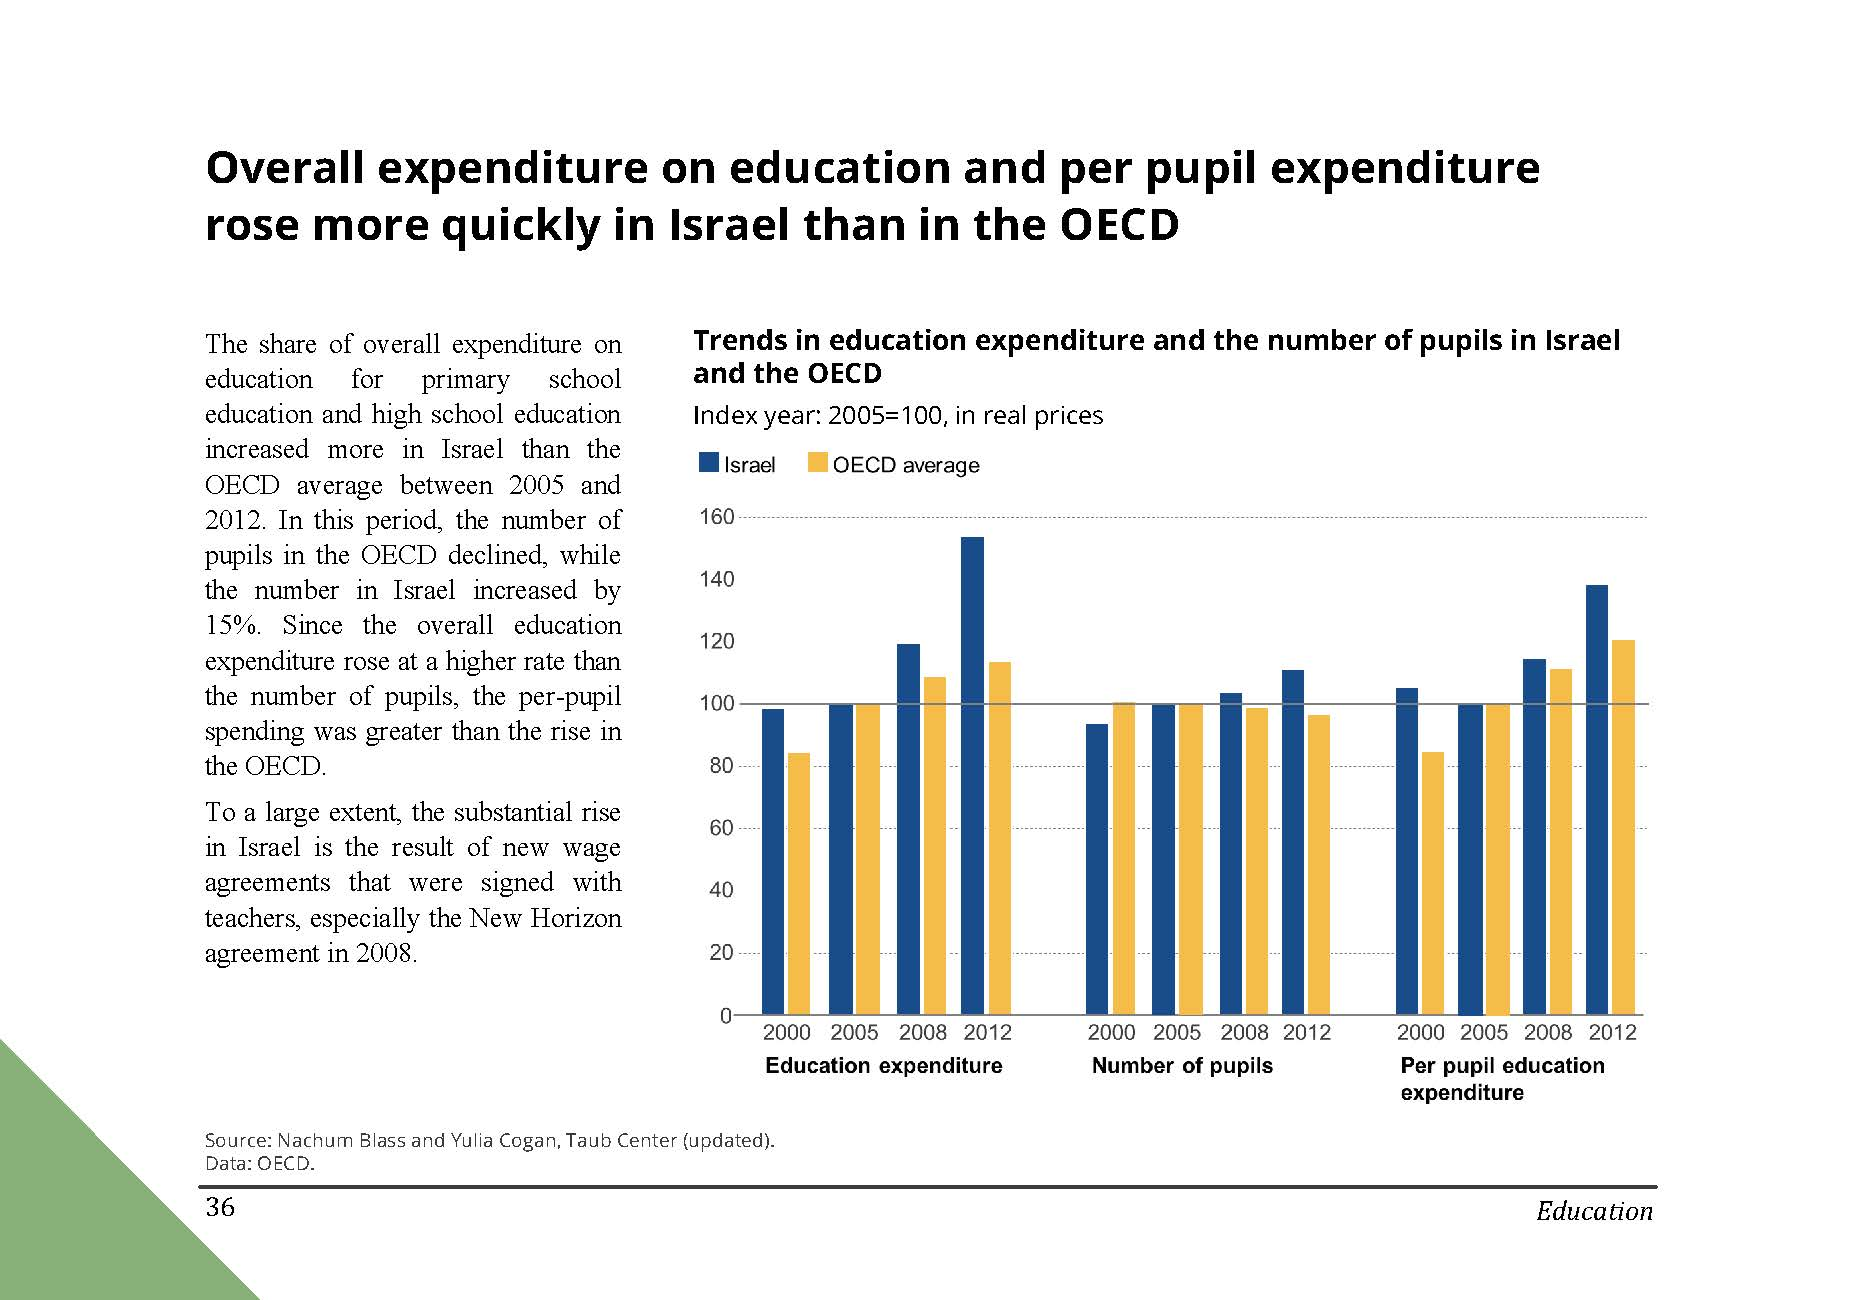 Overall expenditure on education and per pupil expenditure rose more quickly in Israel than in the OECD